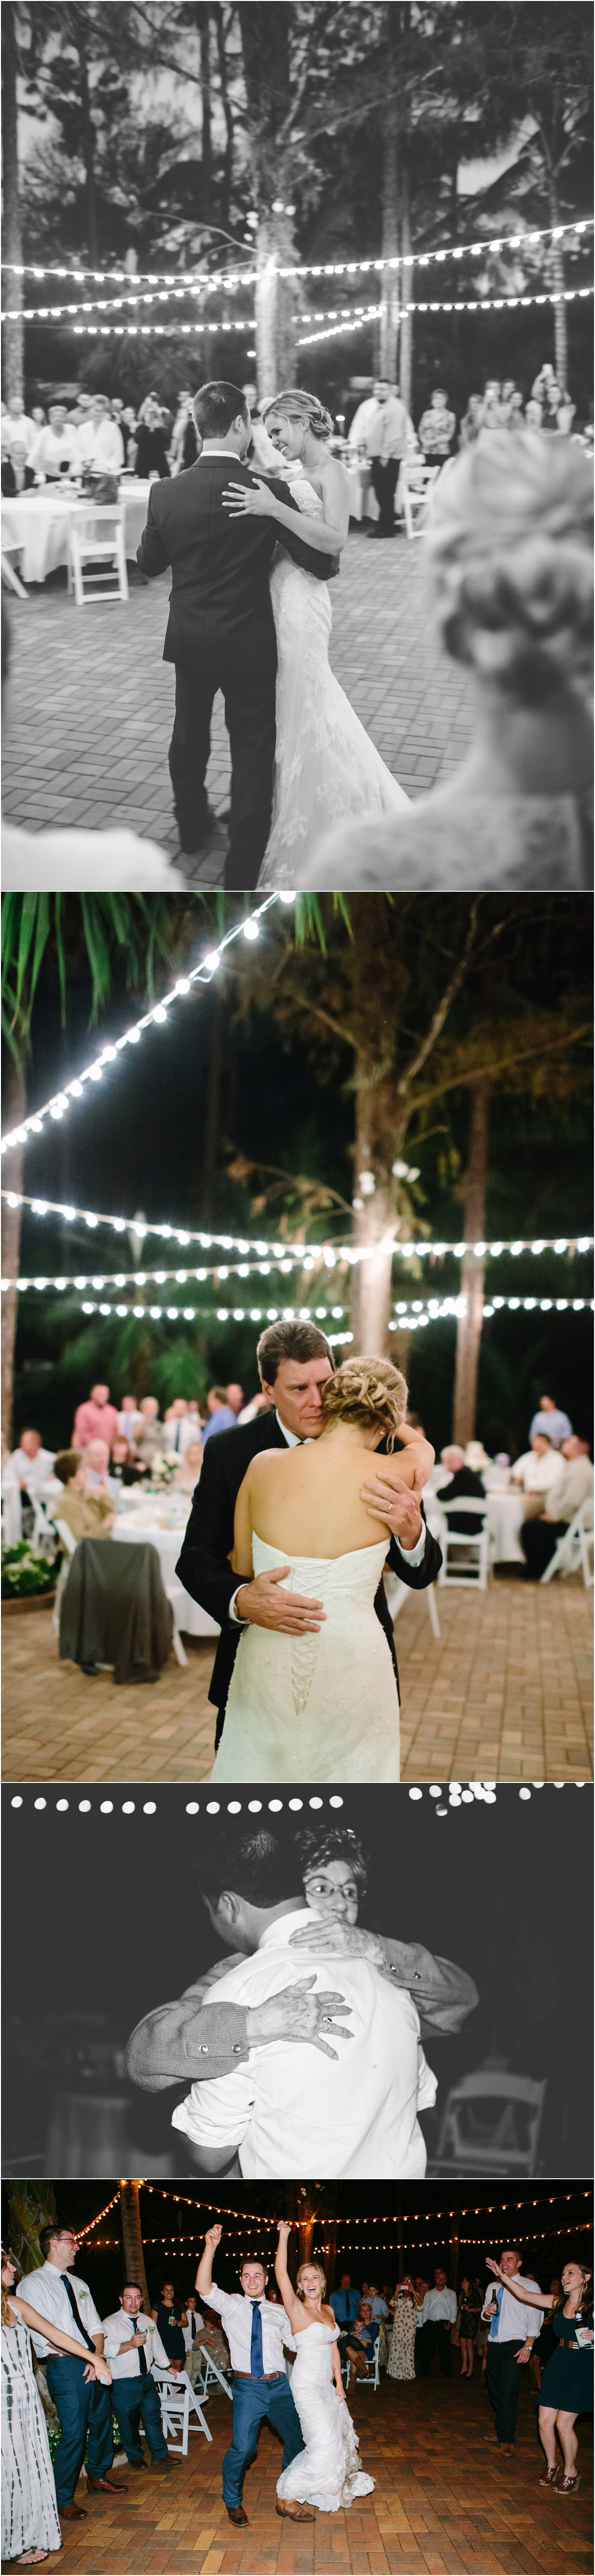 South_Florida_Wedding_Southern_Palm_0035